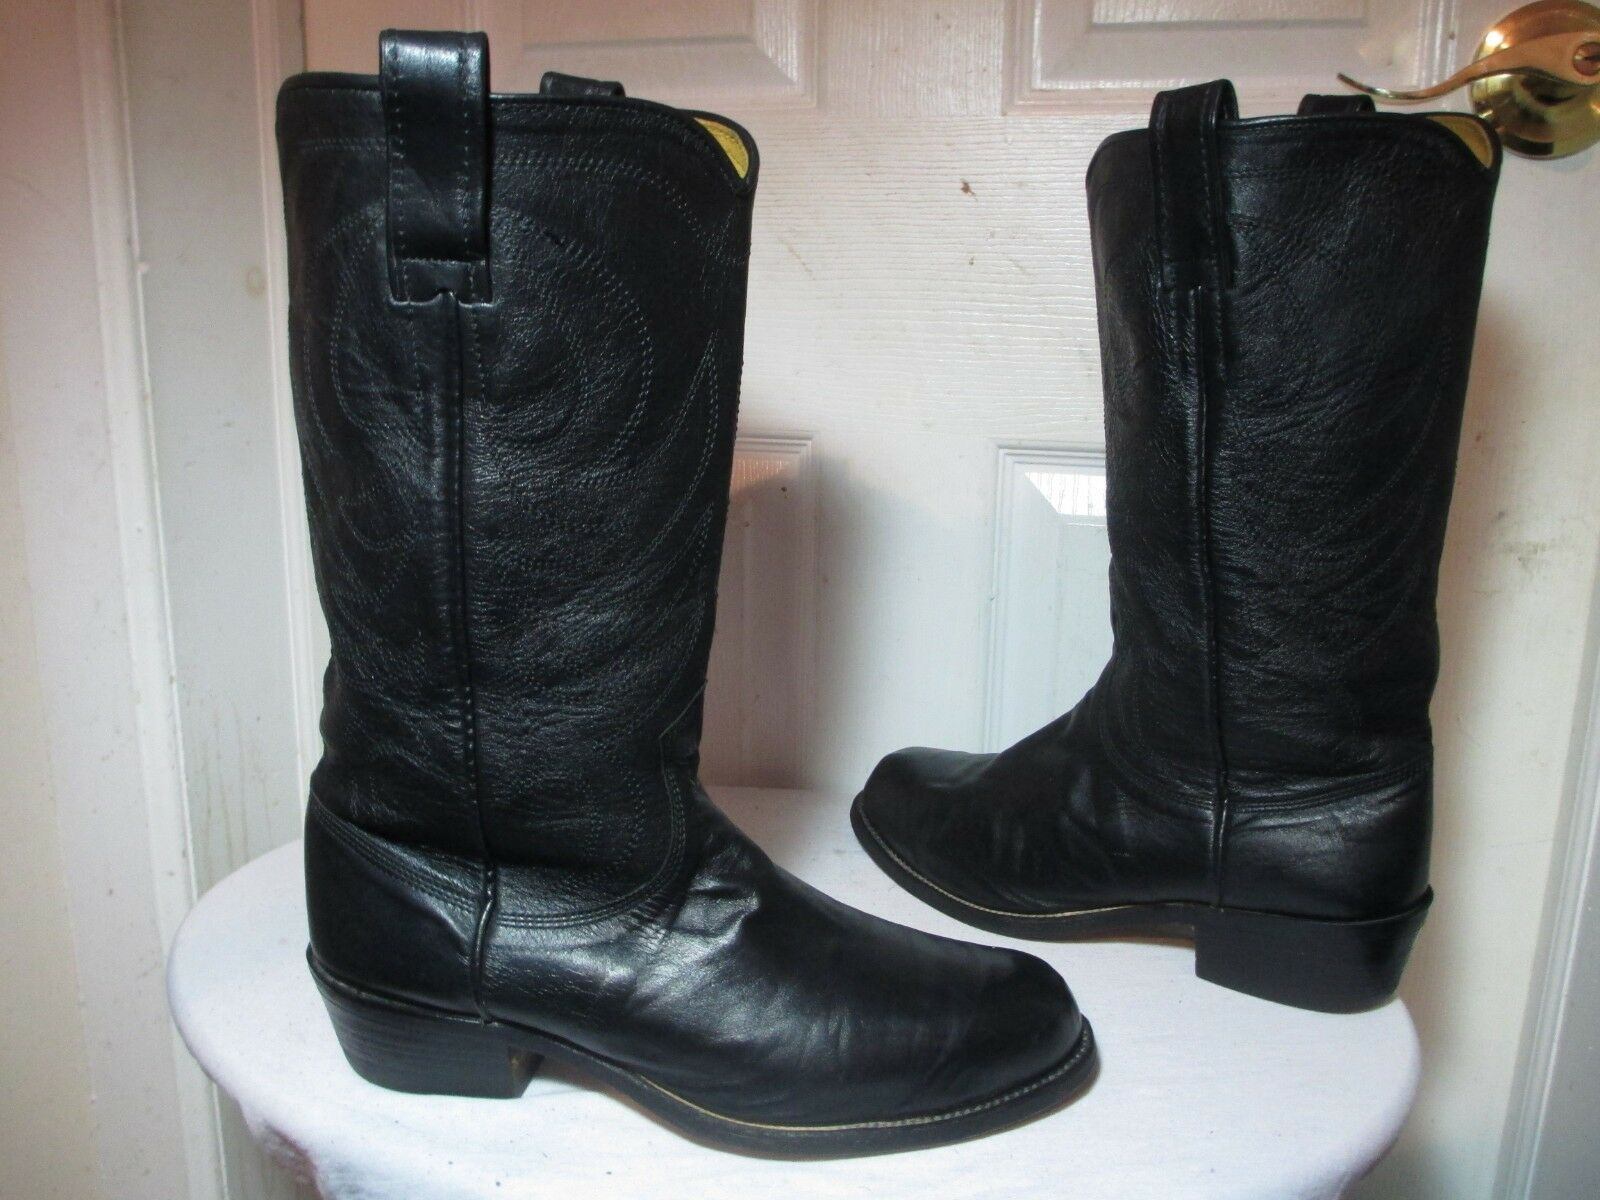 R Williams M Williams R Botas Ejecutivo De Cuero Genuino Negro Botas De Vaquero Tamaño G 10 700 ae4e1a